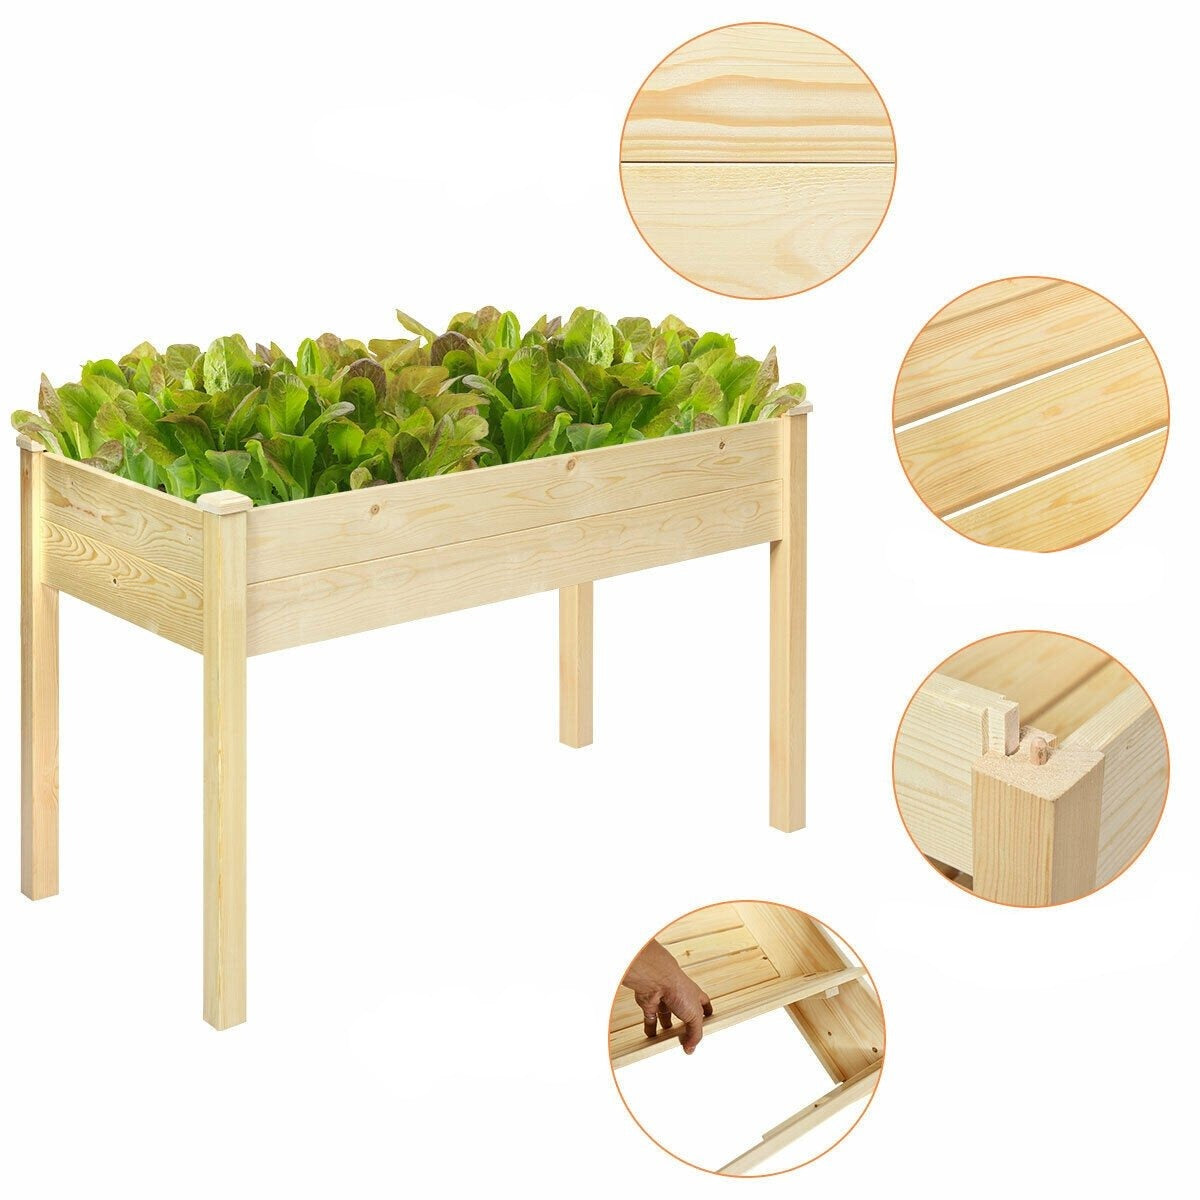 Plaint Raised Garden Bed Vegetable Wooden Elevated Grow Vegetable Planter - Morealis